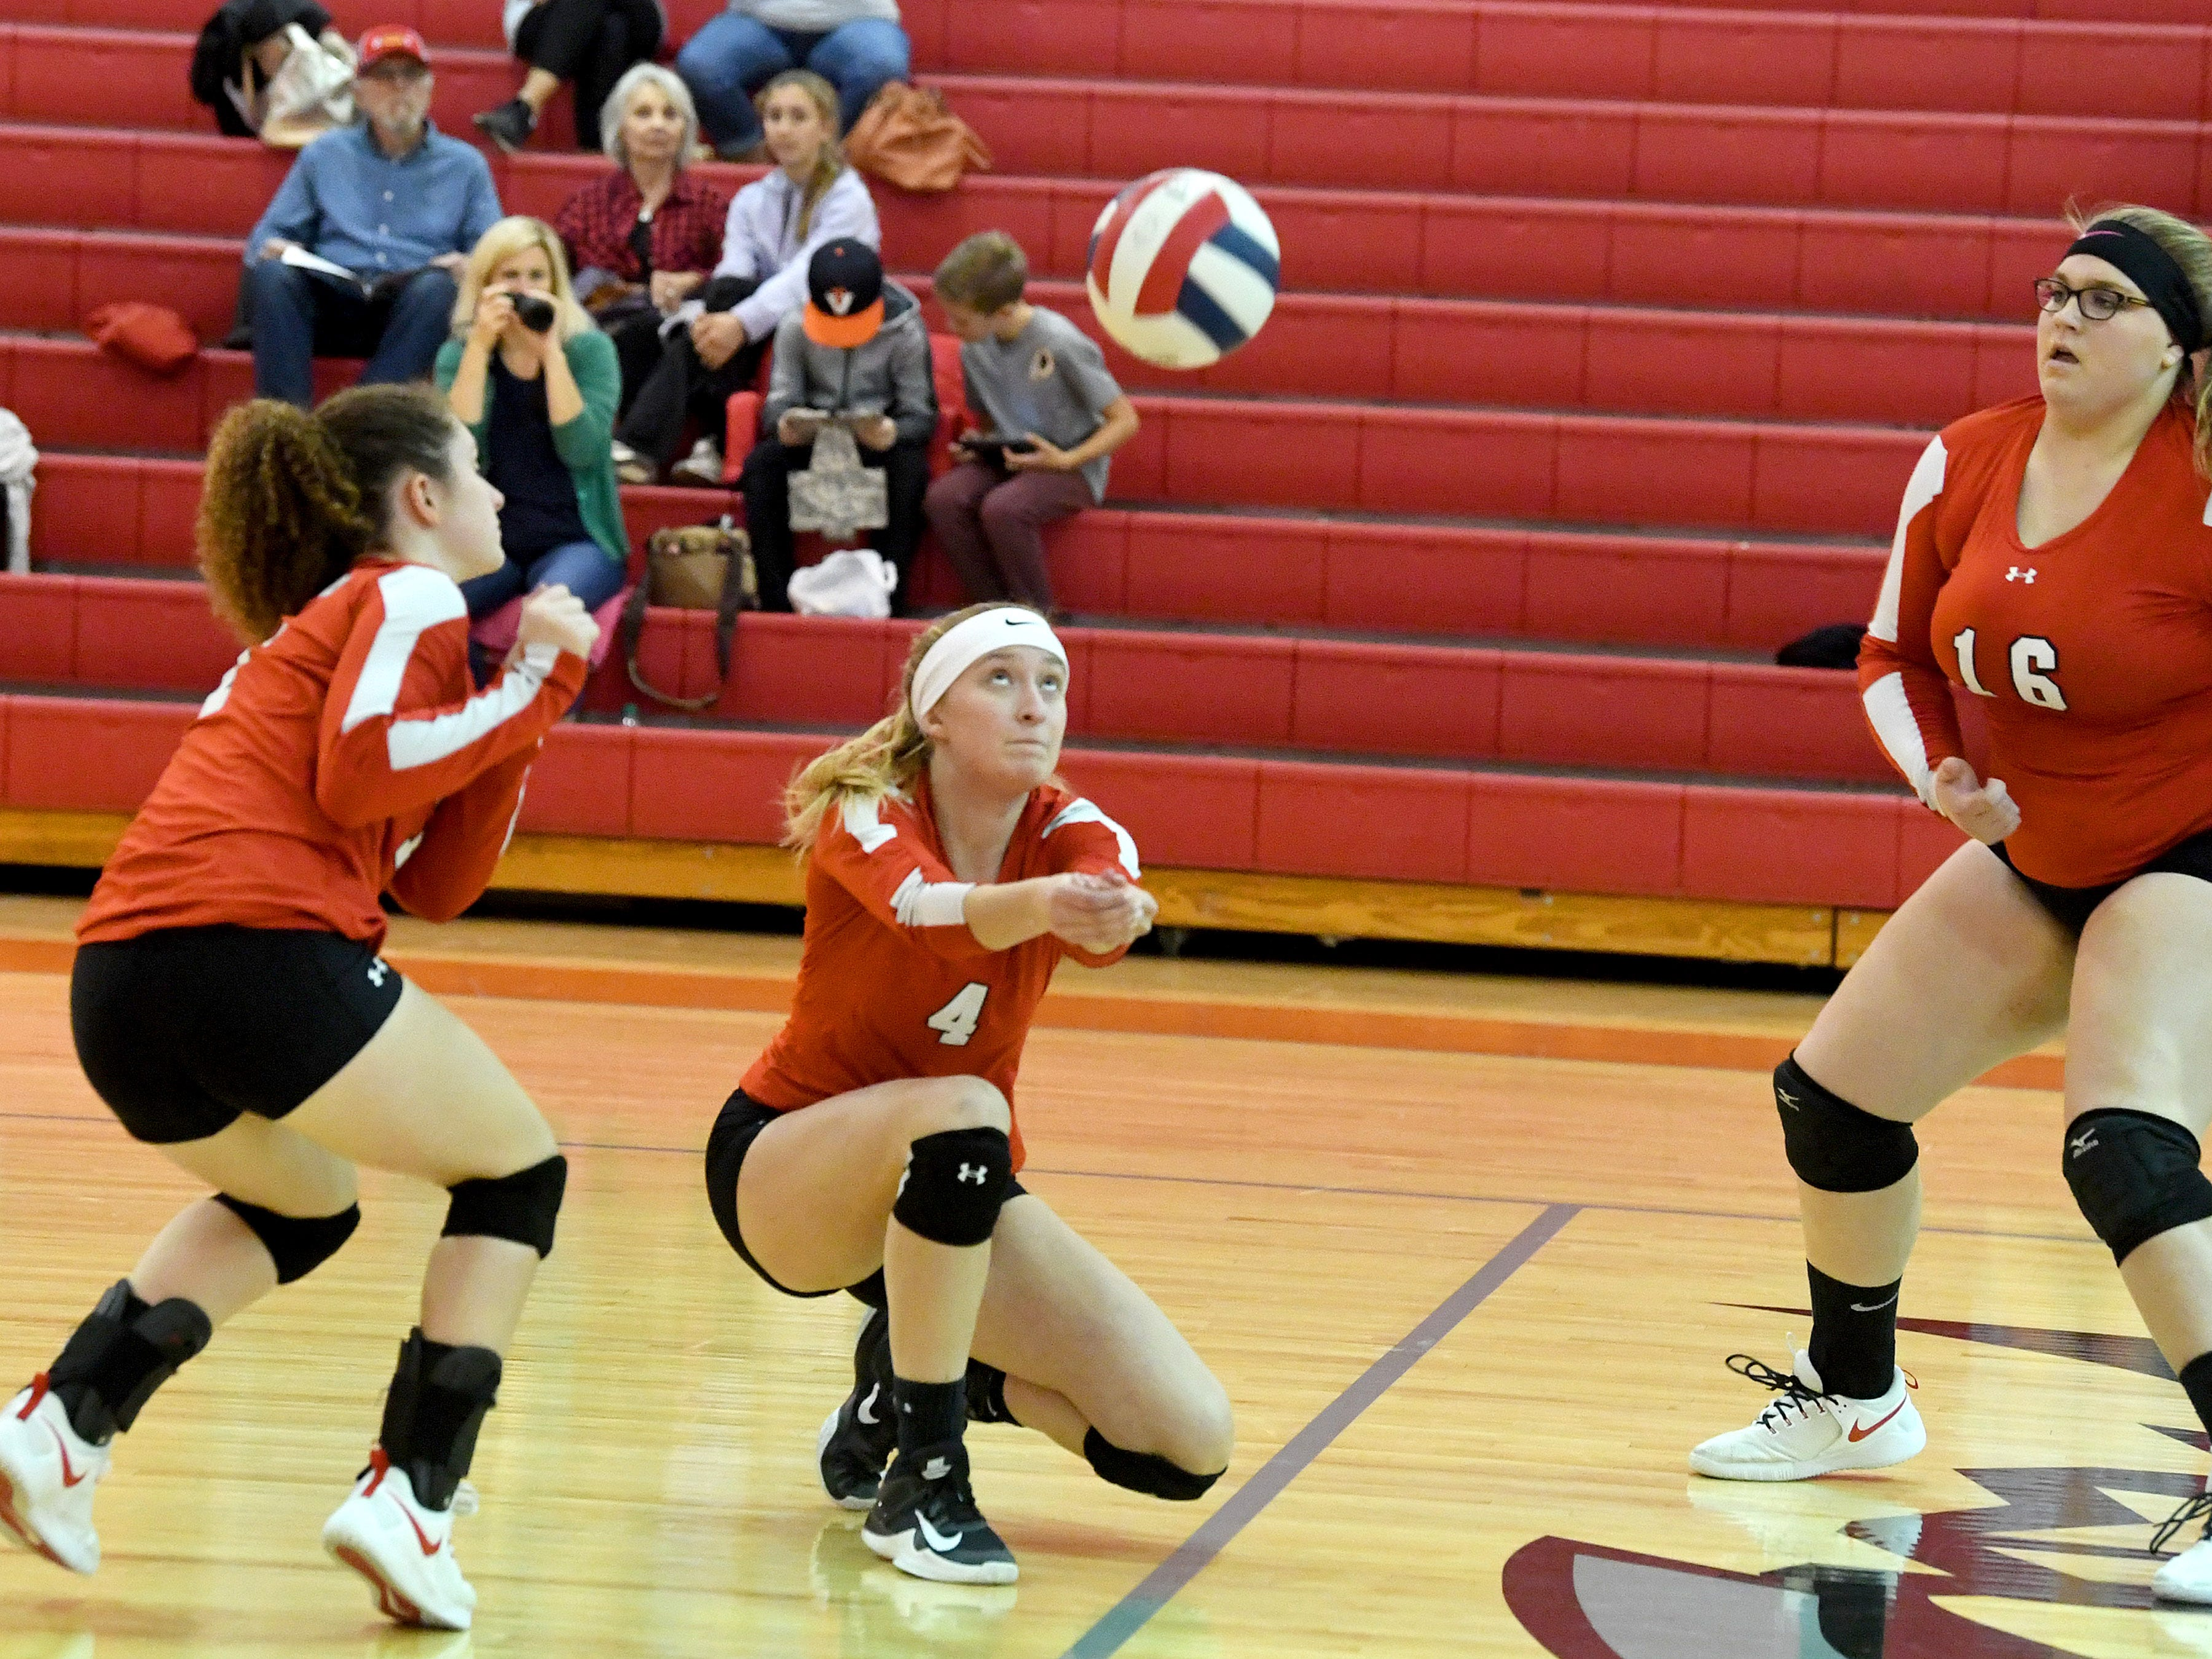 Riverheads' Emma Tomlinson drops low to bump the ball between teammates Gracie Fulton and Olivia Modlin during a Region 1B quarterfinal match, played in Greenville on Thursday, Nov. 1, 2018.